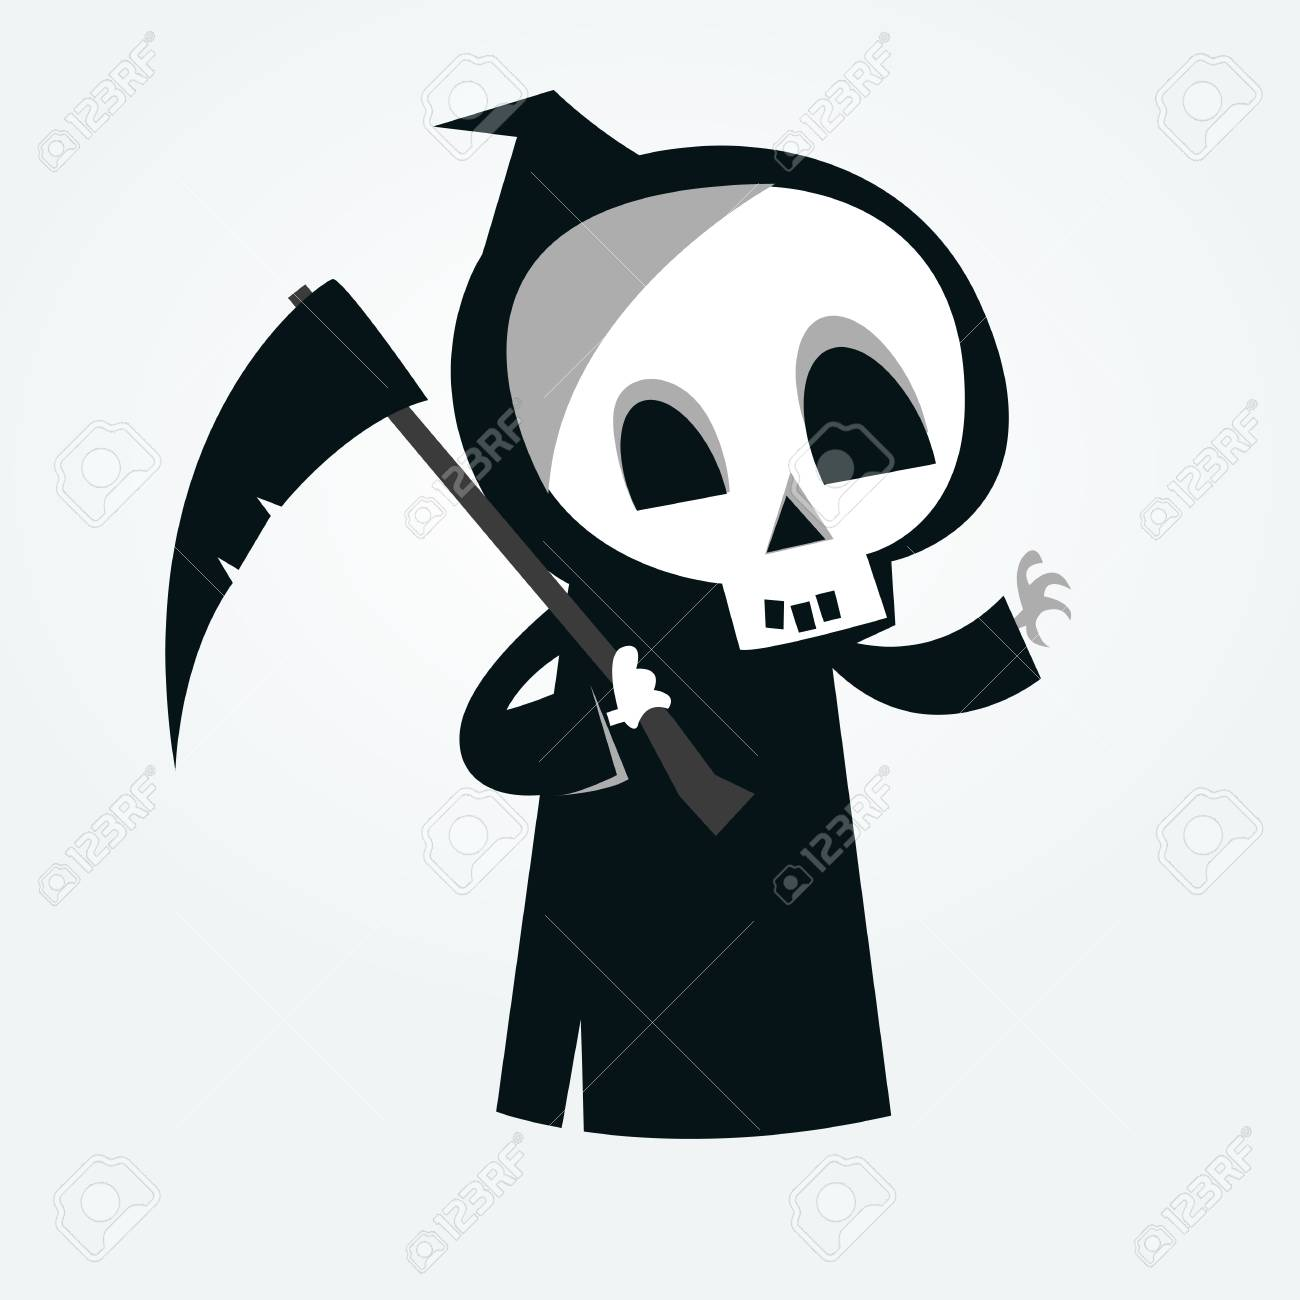 hight resolution of cute cartoon grim reaper with scythe isolated on white vector illustration stock vector 85472295